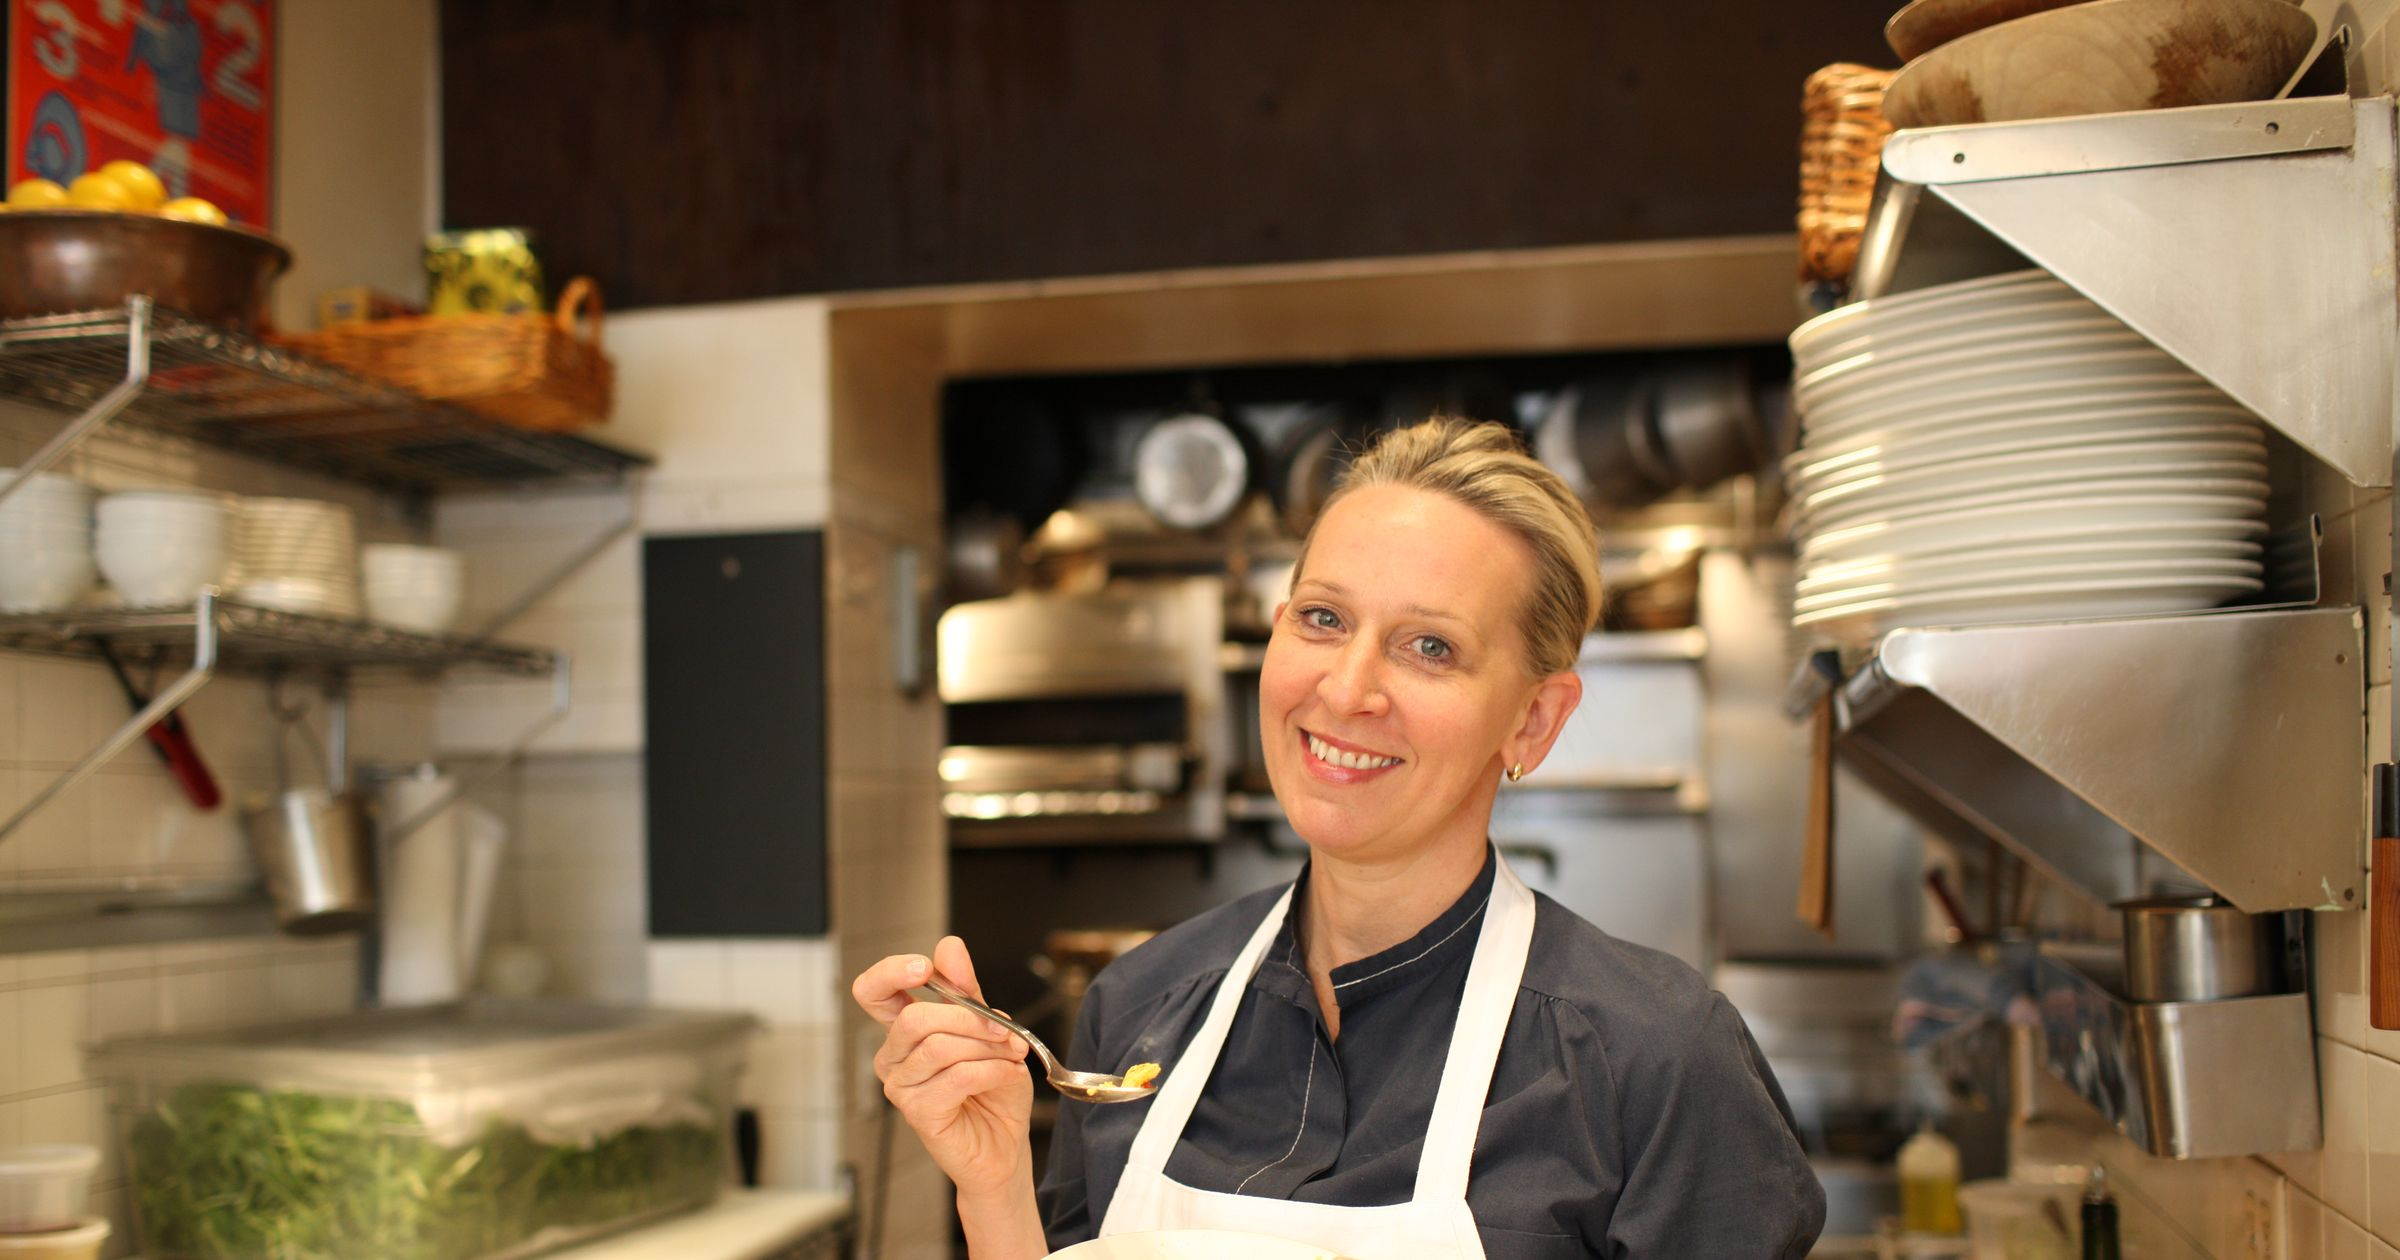 gabrielle hamilton s long awaited cookbook finally has a release